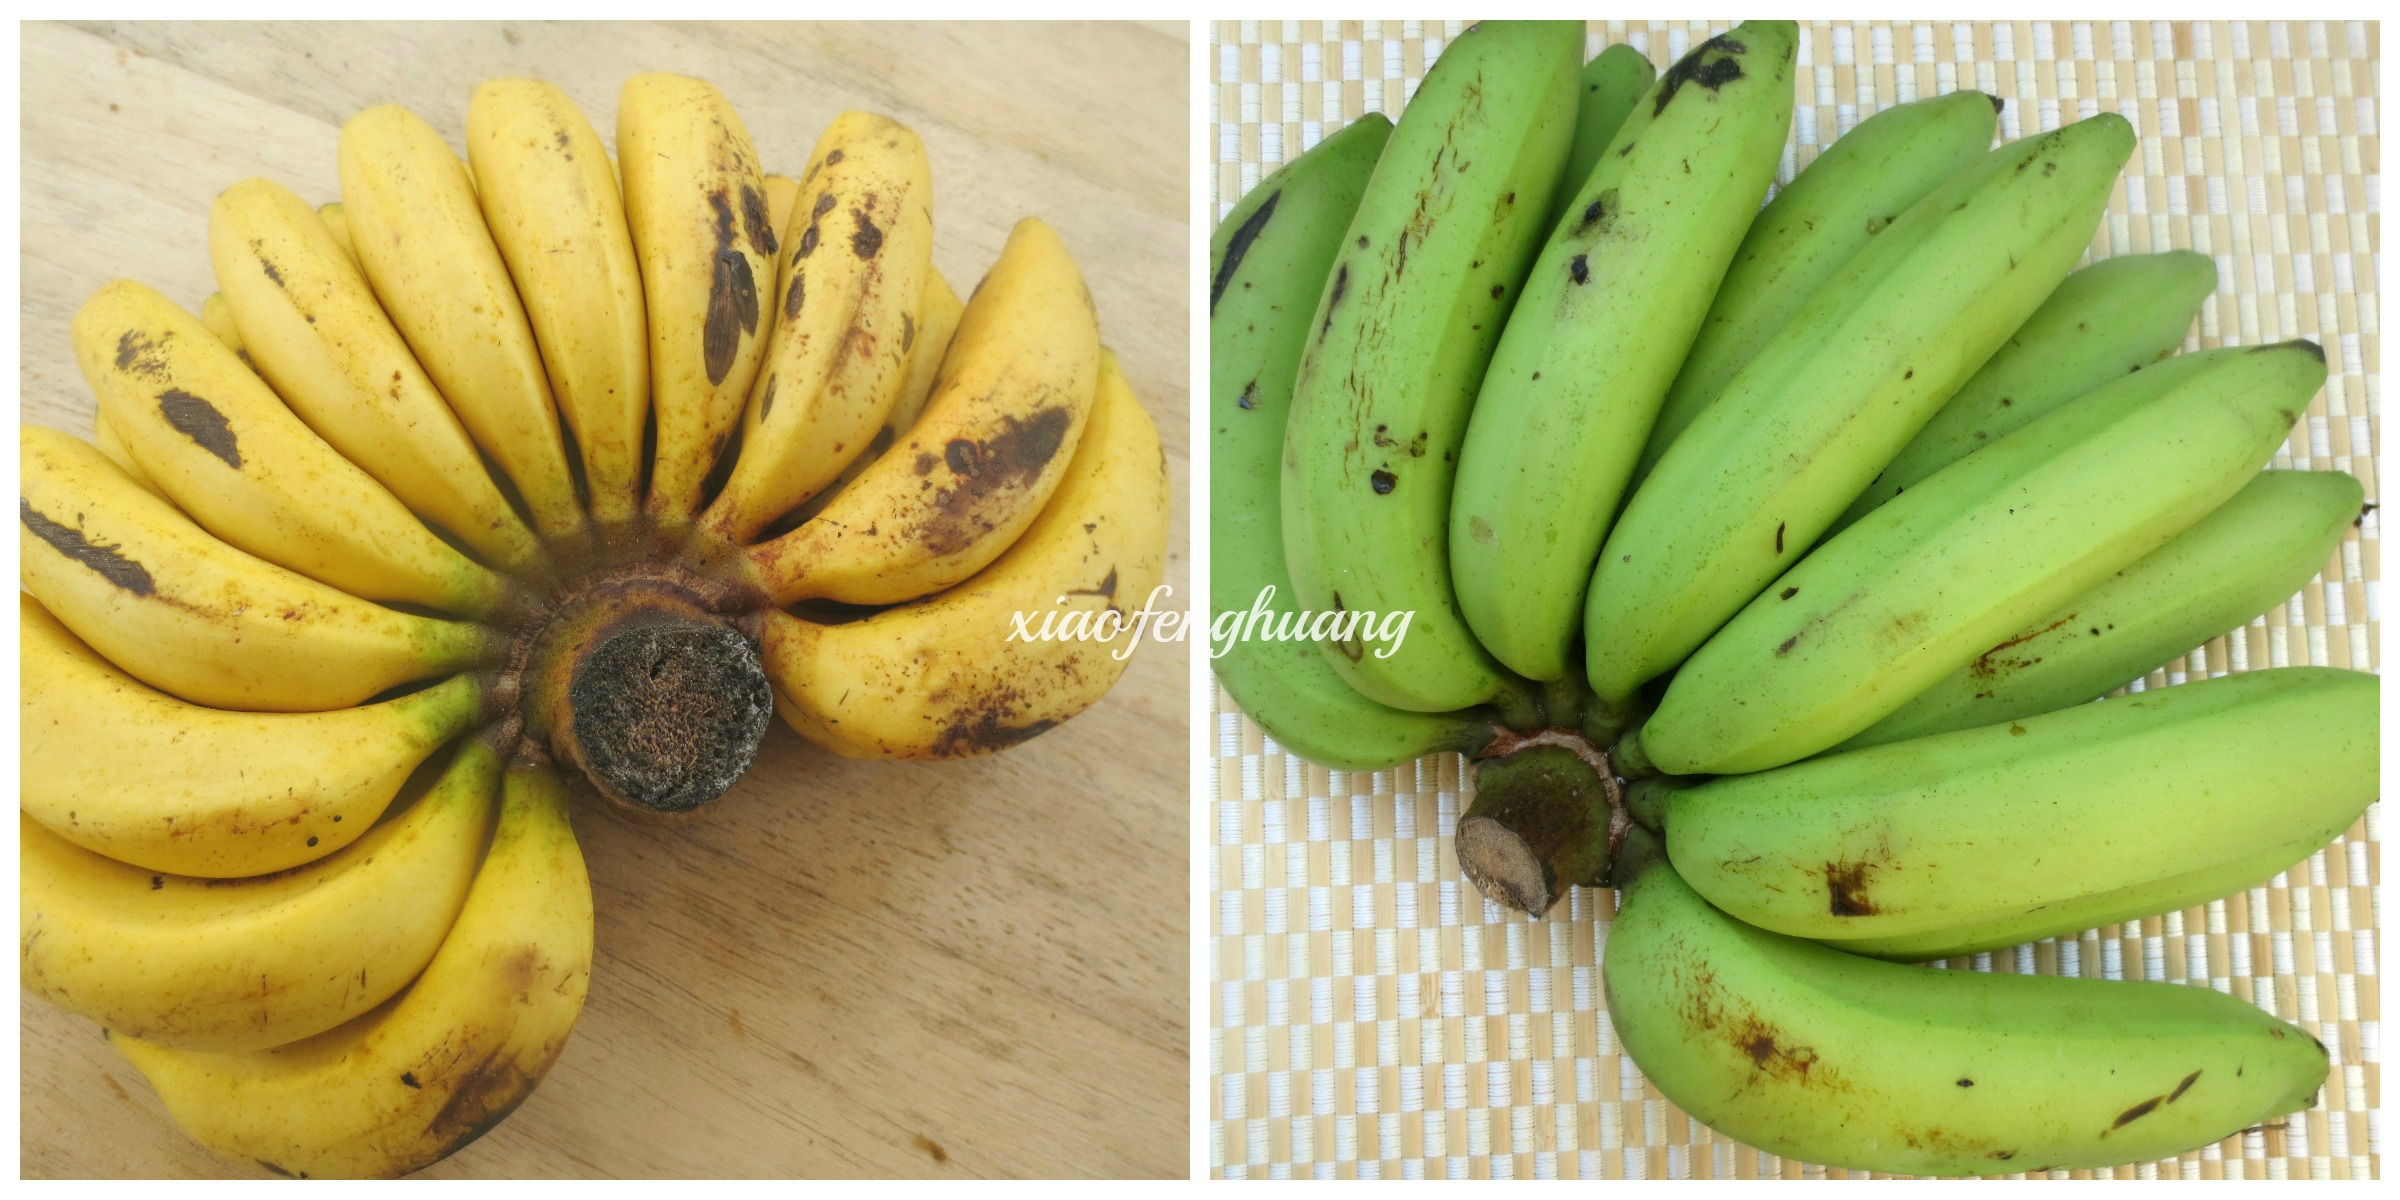 Left - Pisang Jari Right - Pisang Ambon